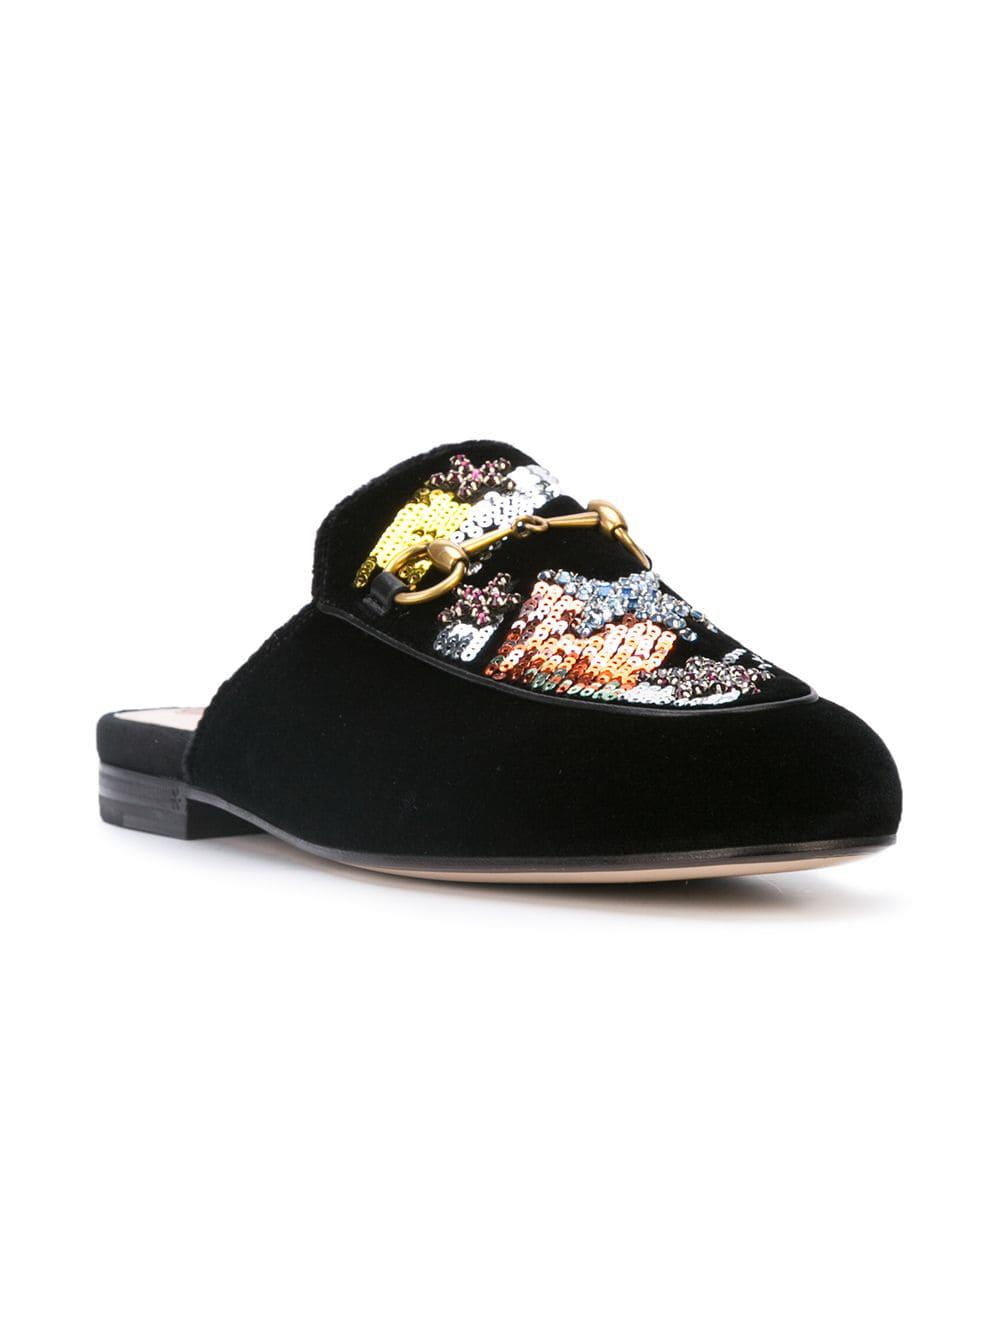 85a89509717 Lyst - Gucci Princetown Embroidered Mules in Black